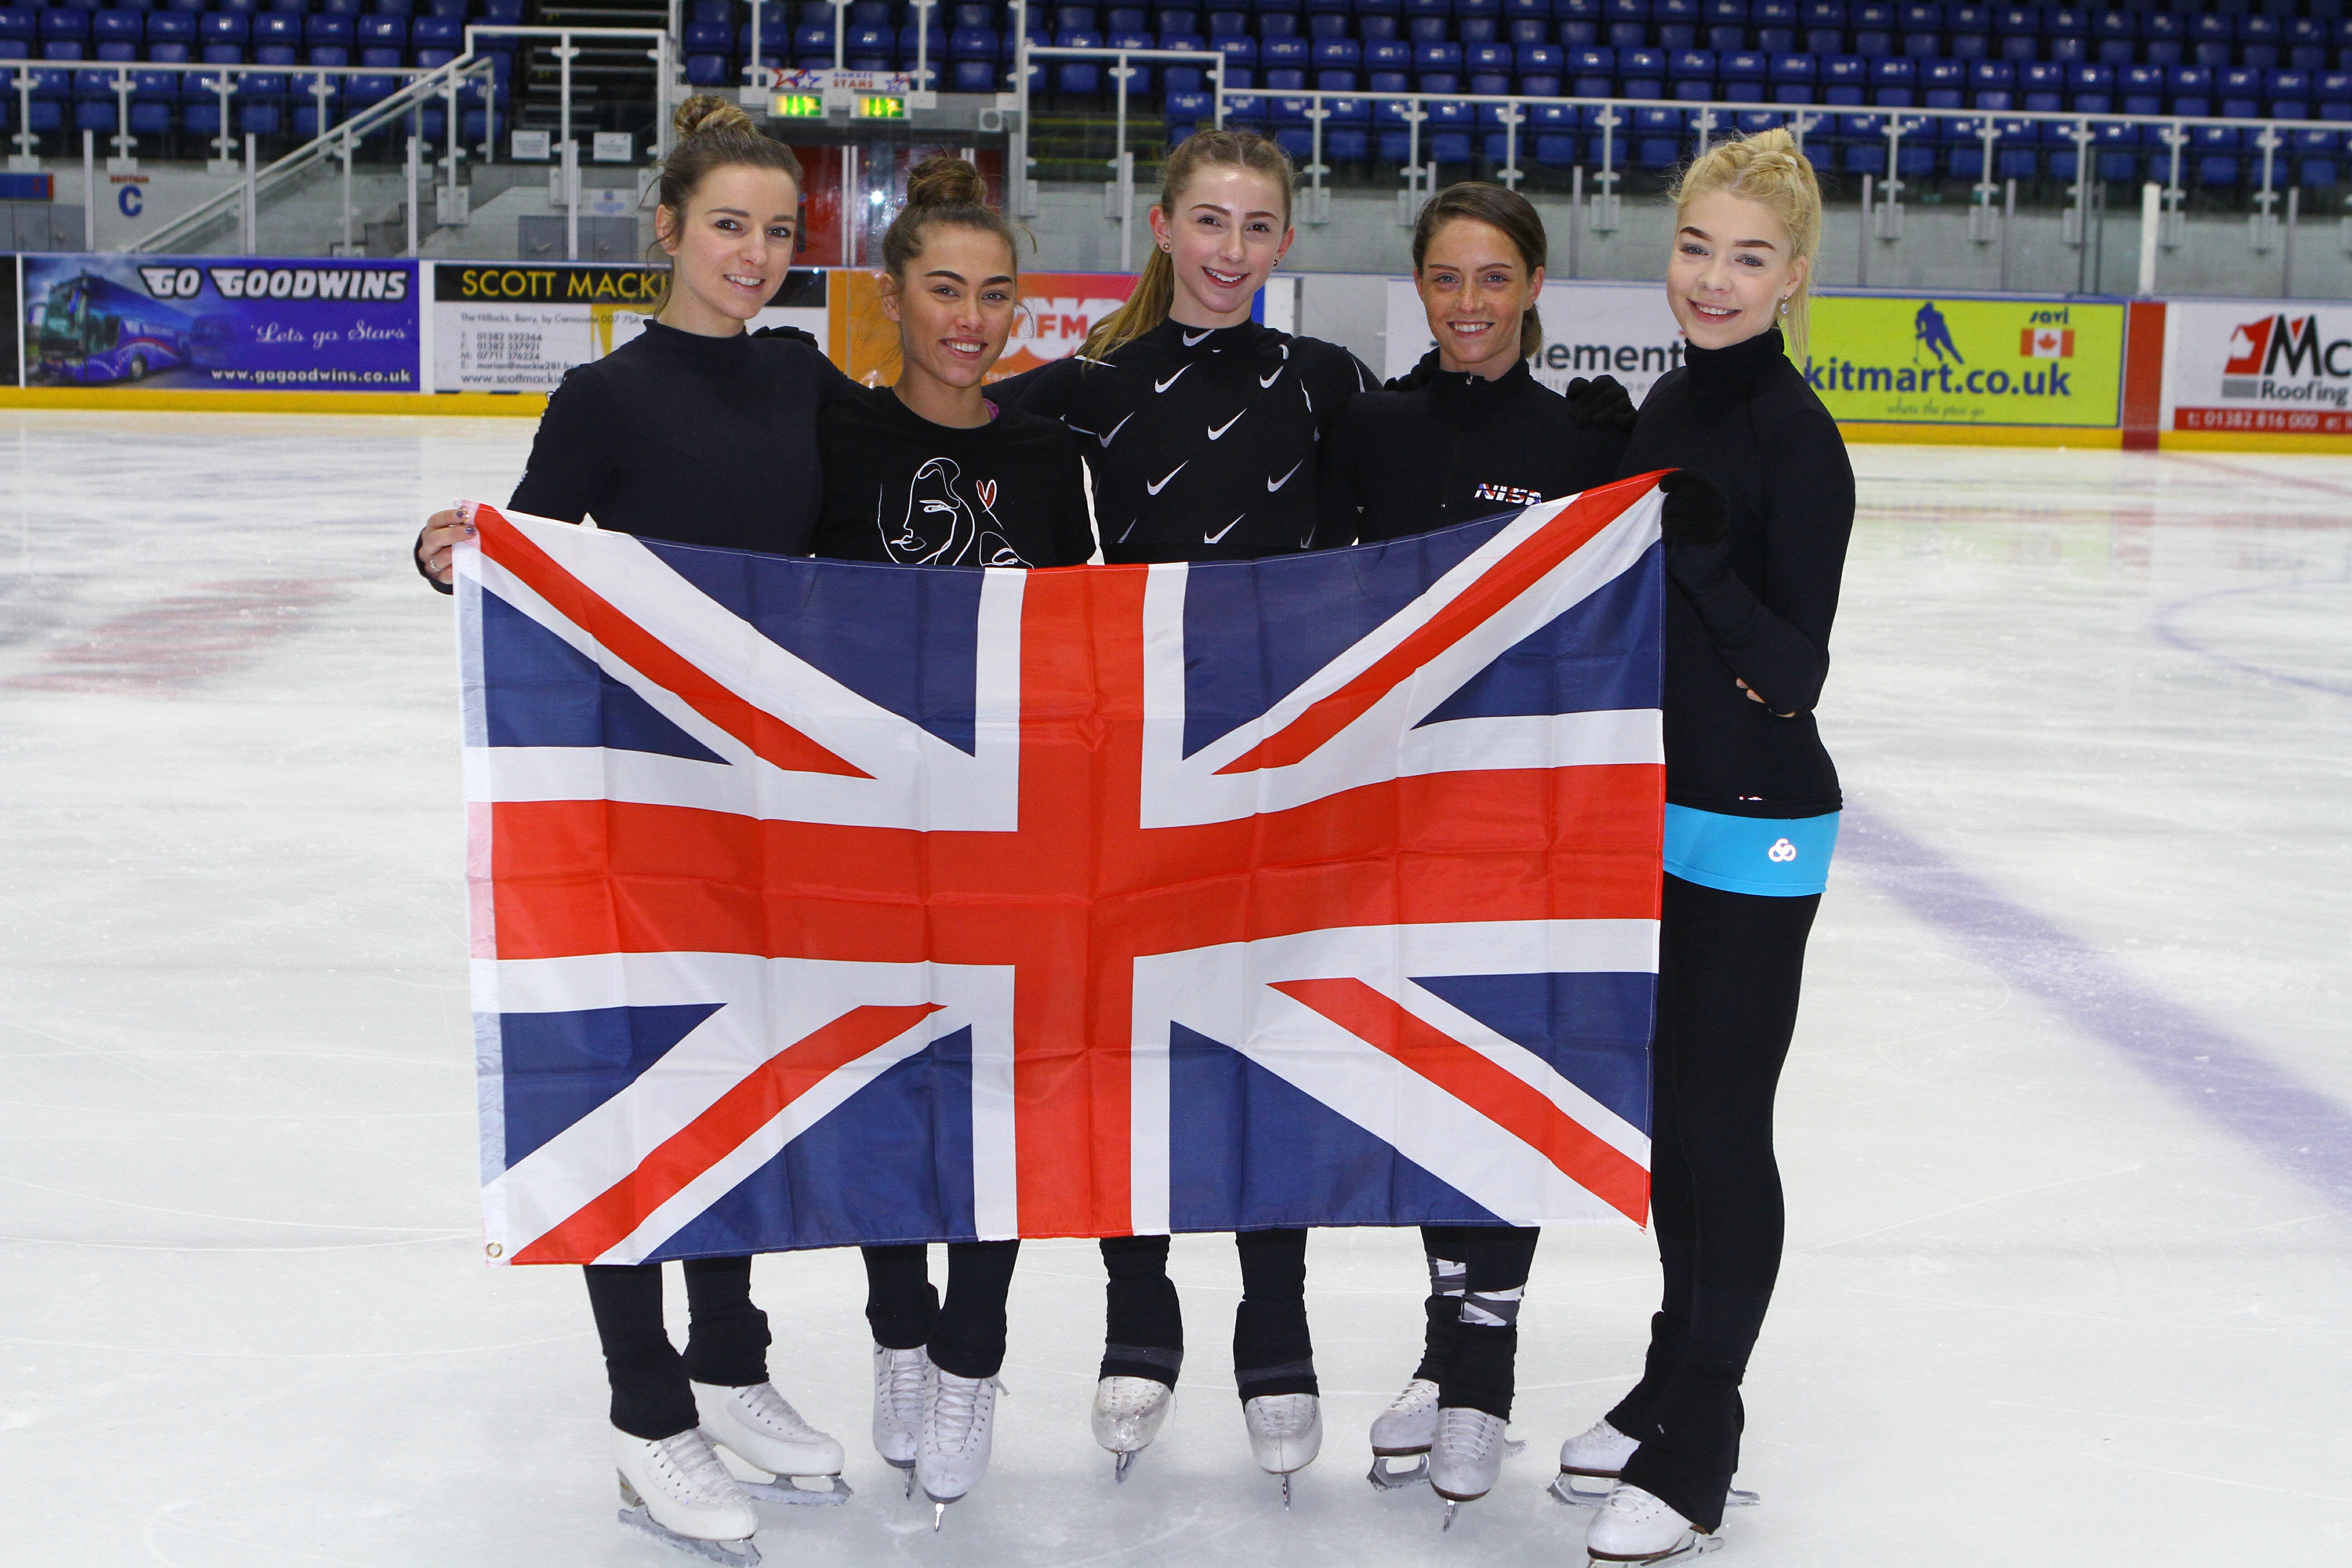 Five of the Dundee skaters who will be taking part in the national championships.